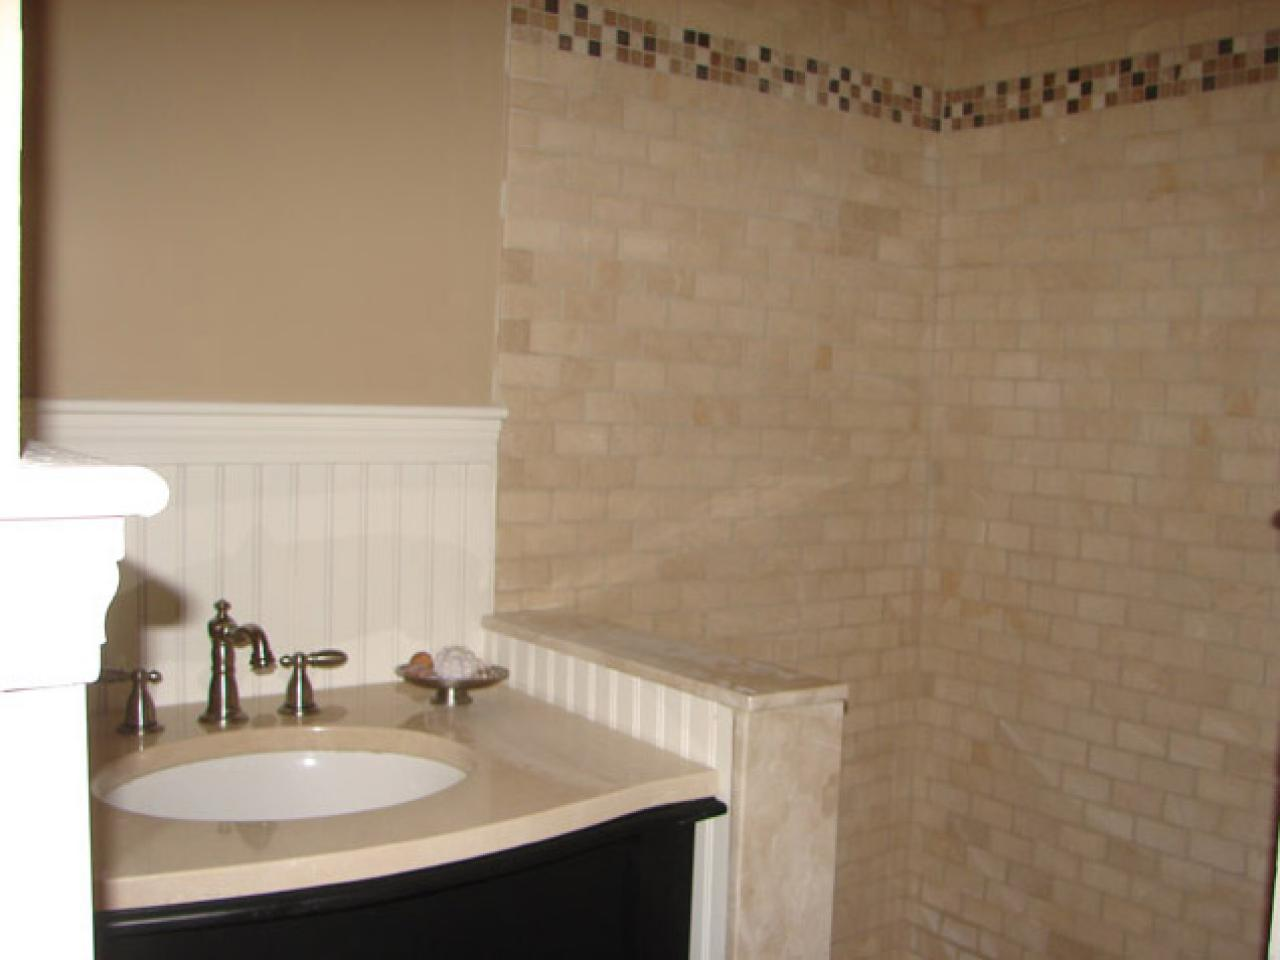 How to Install Tile in a Bathroom Shower | HGTV